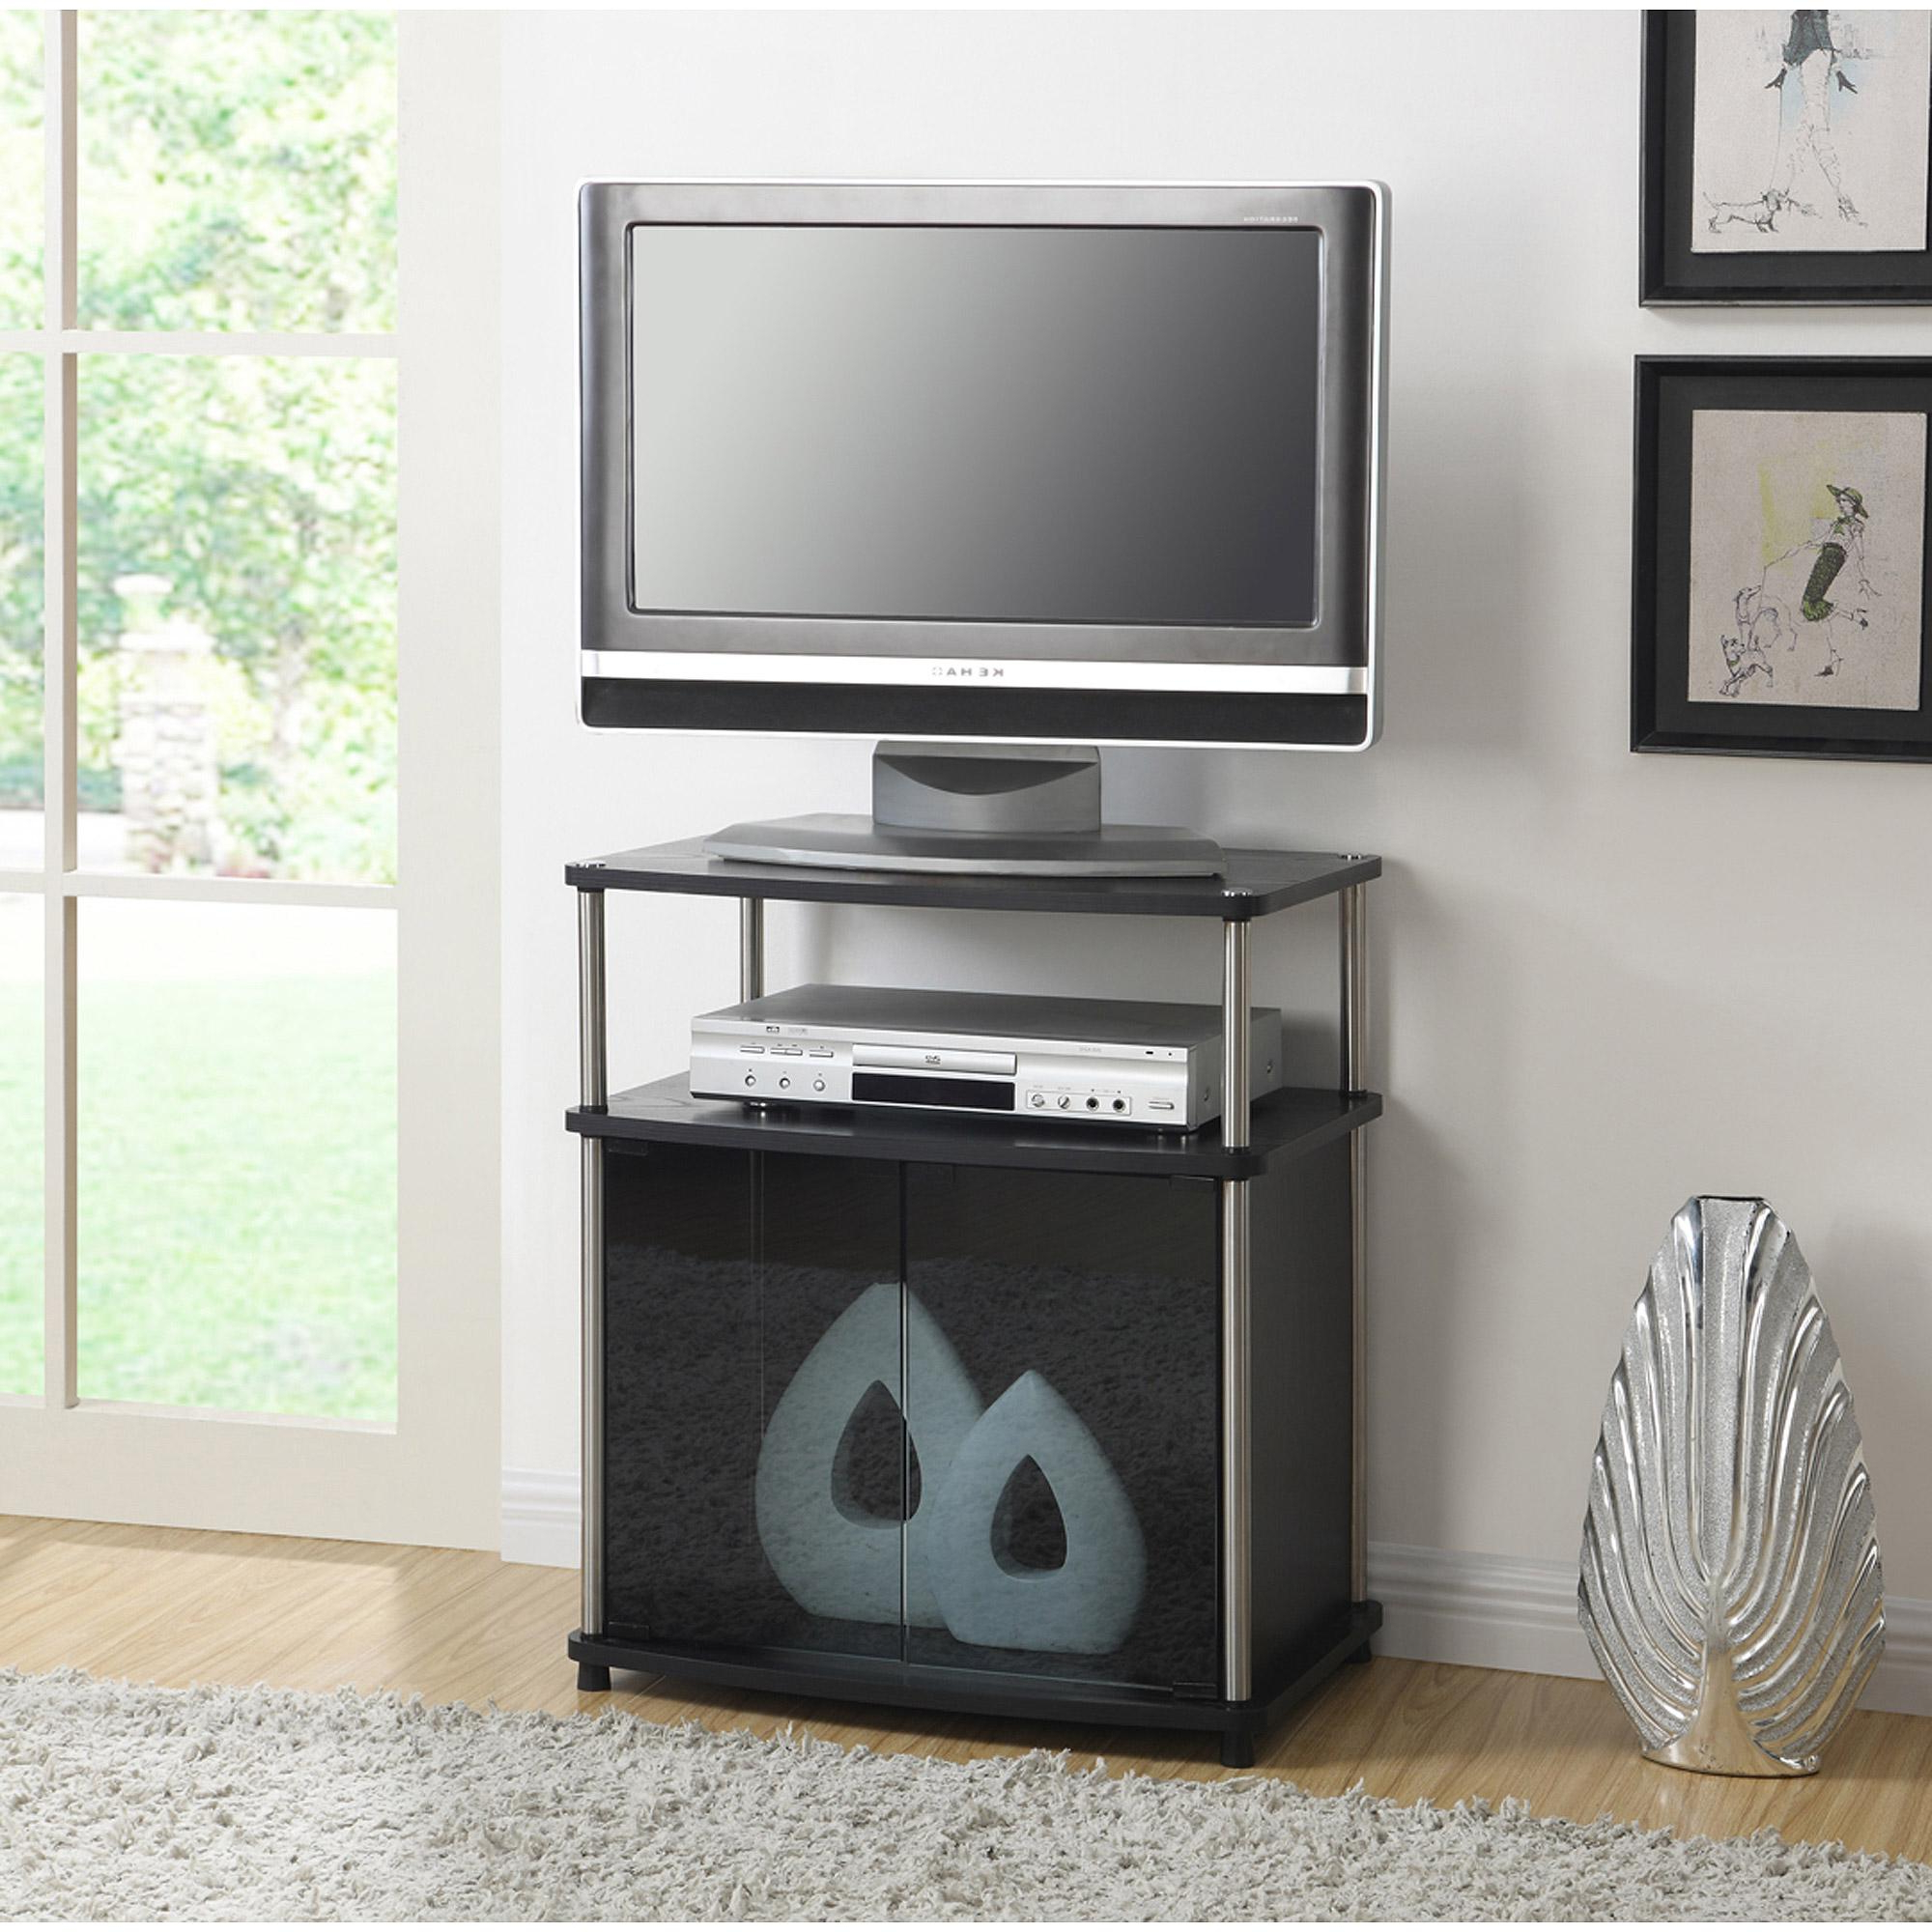 Modern Tall Black Tv Stand With Glass Doors For Bedroom Of 16 Tall With Fashionable Tall Black Tv Cabinets (View 9 of 20)